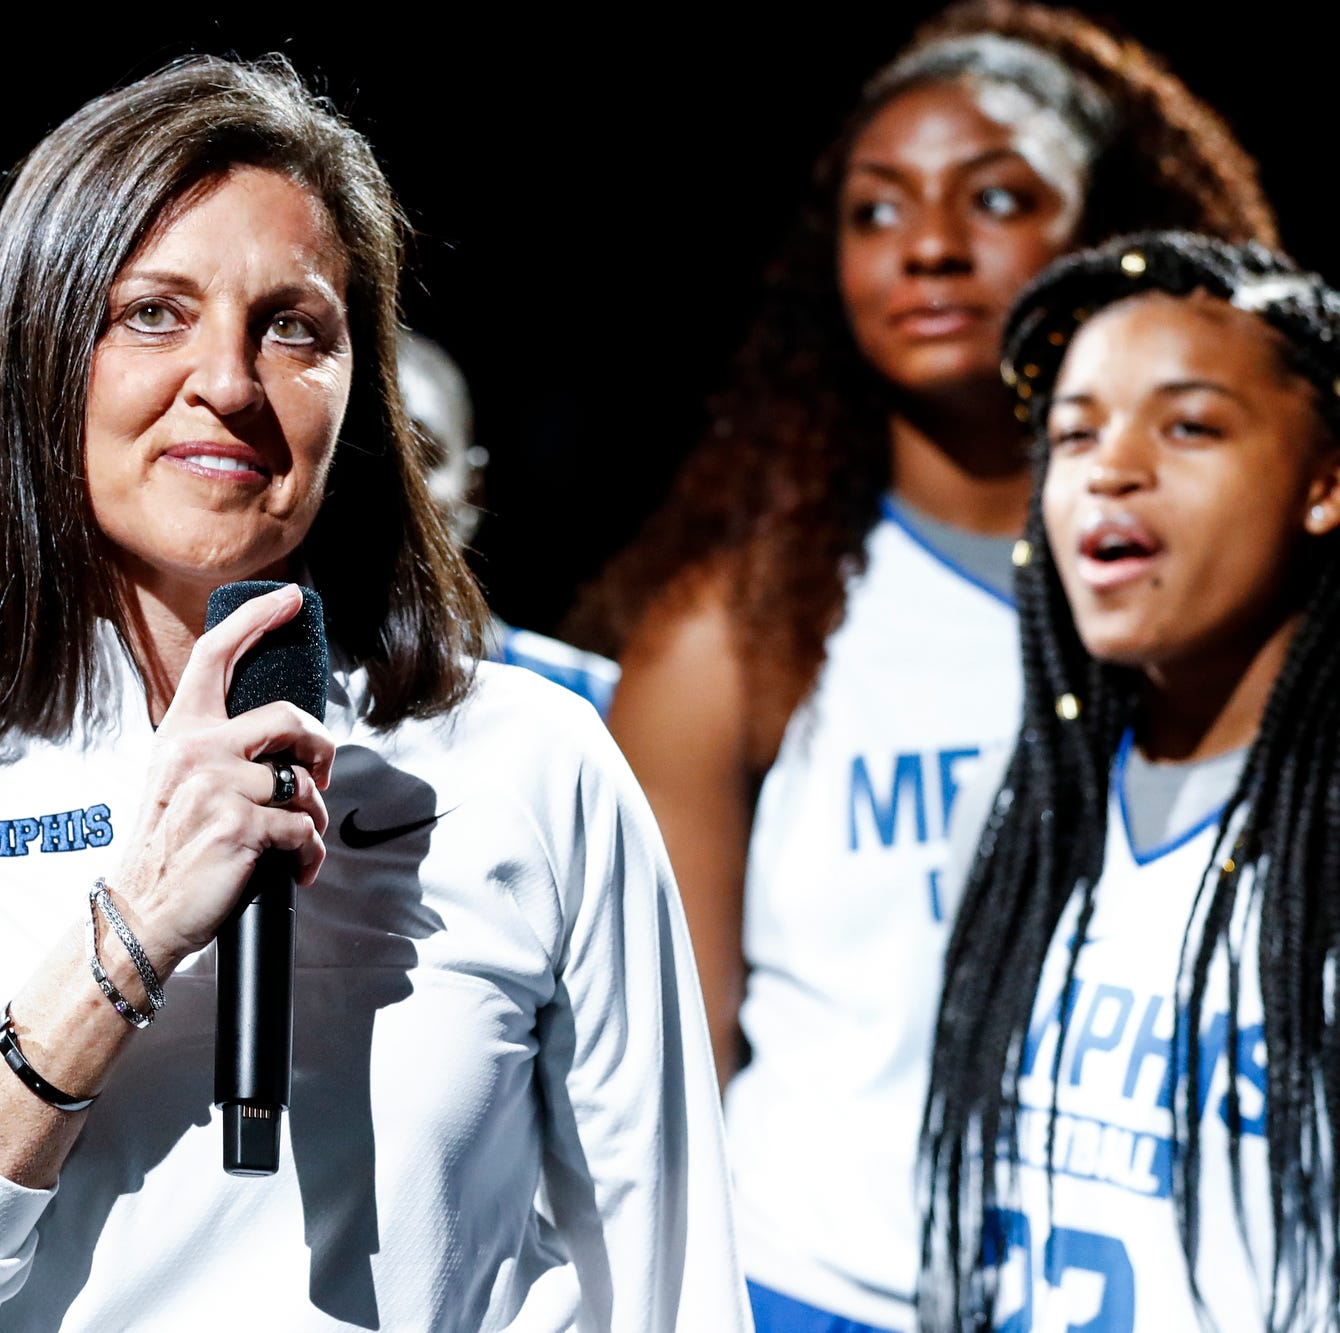 Memphis extends women's basketball coach Melissa McFerrin through 2020-21